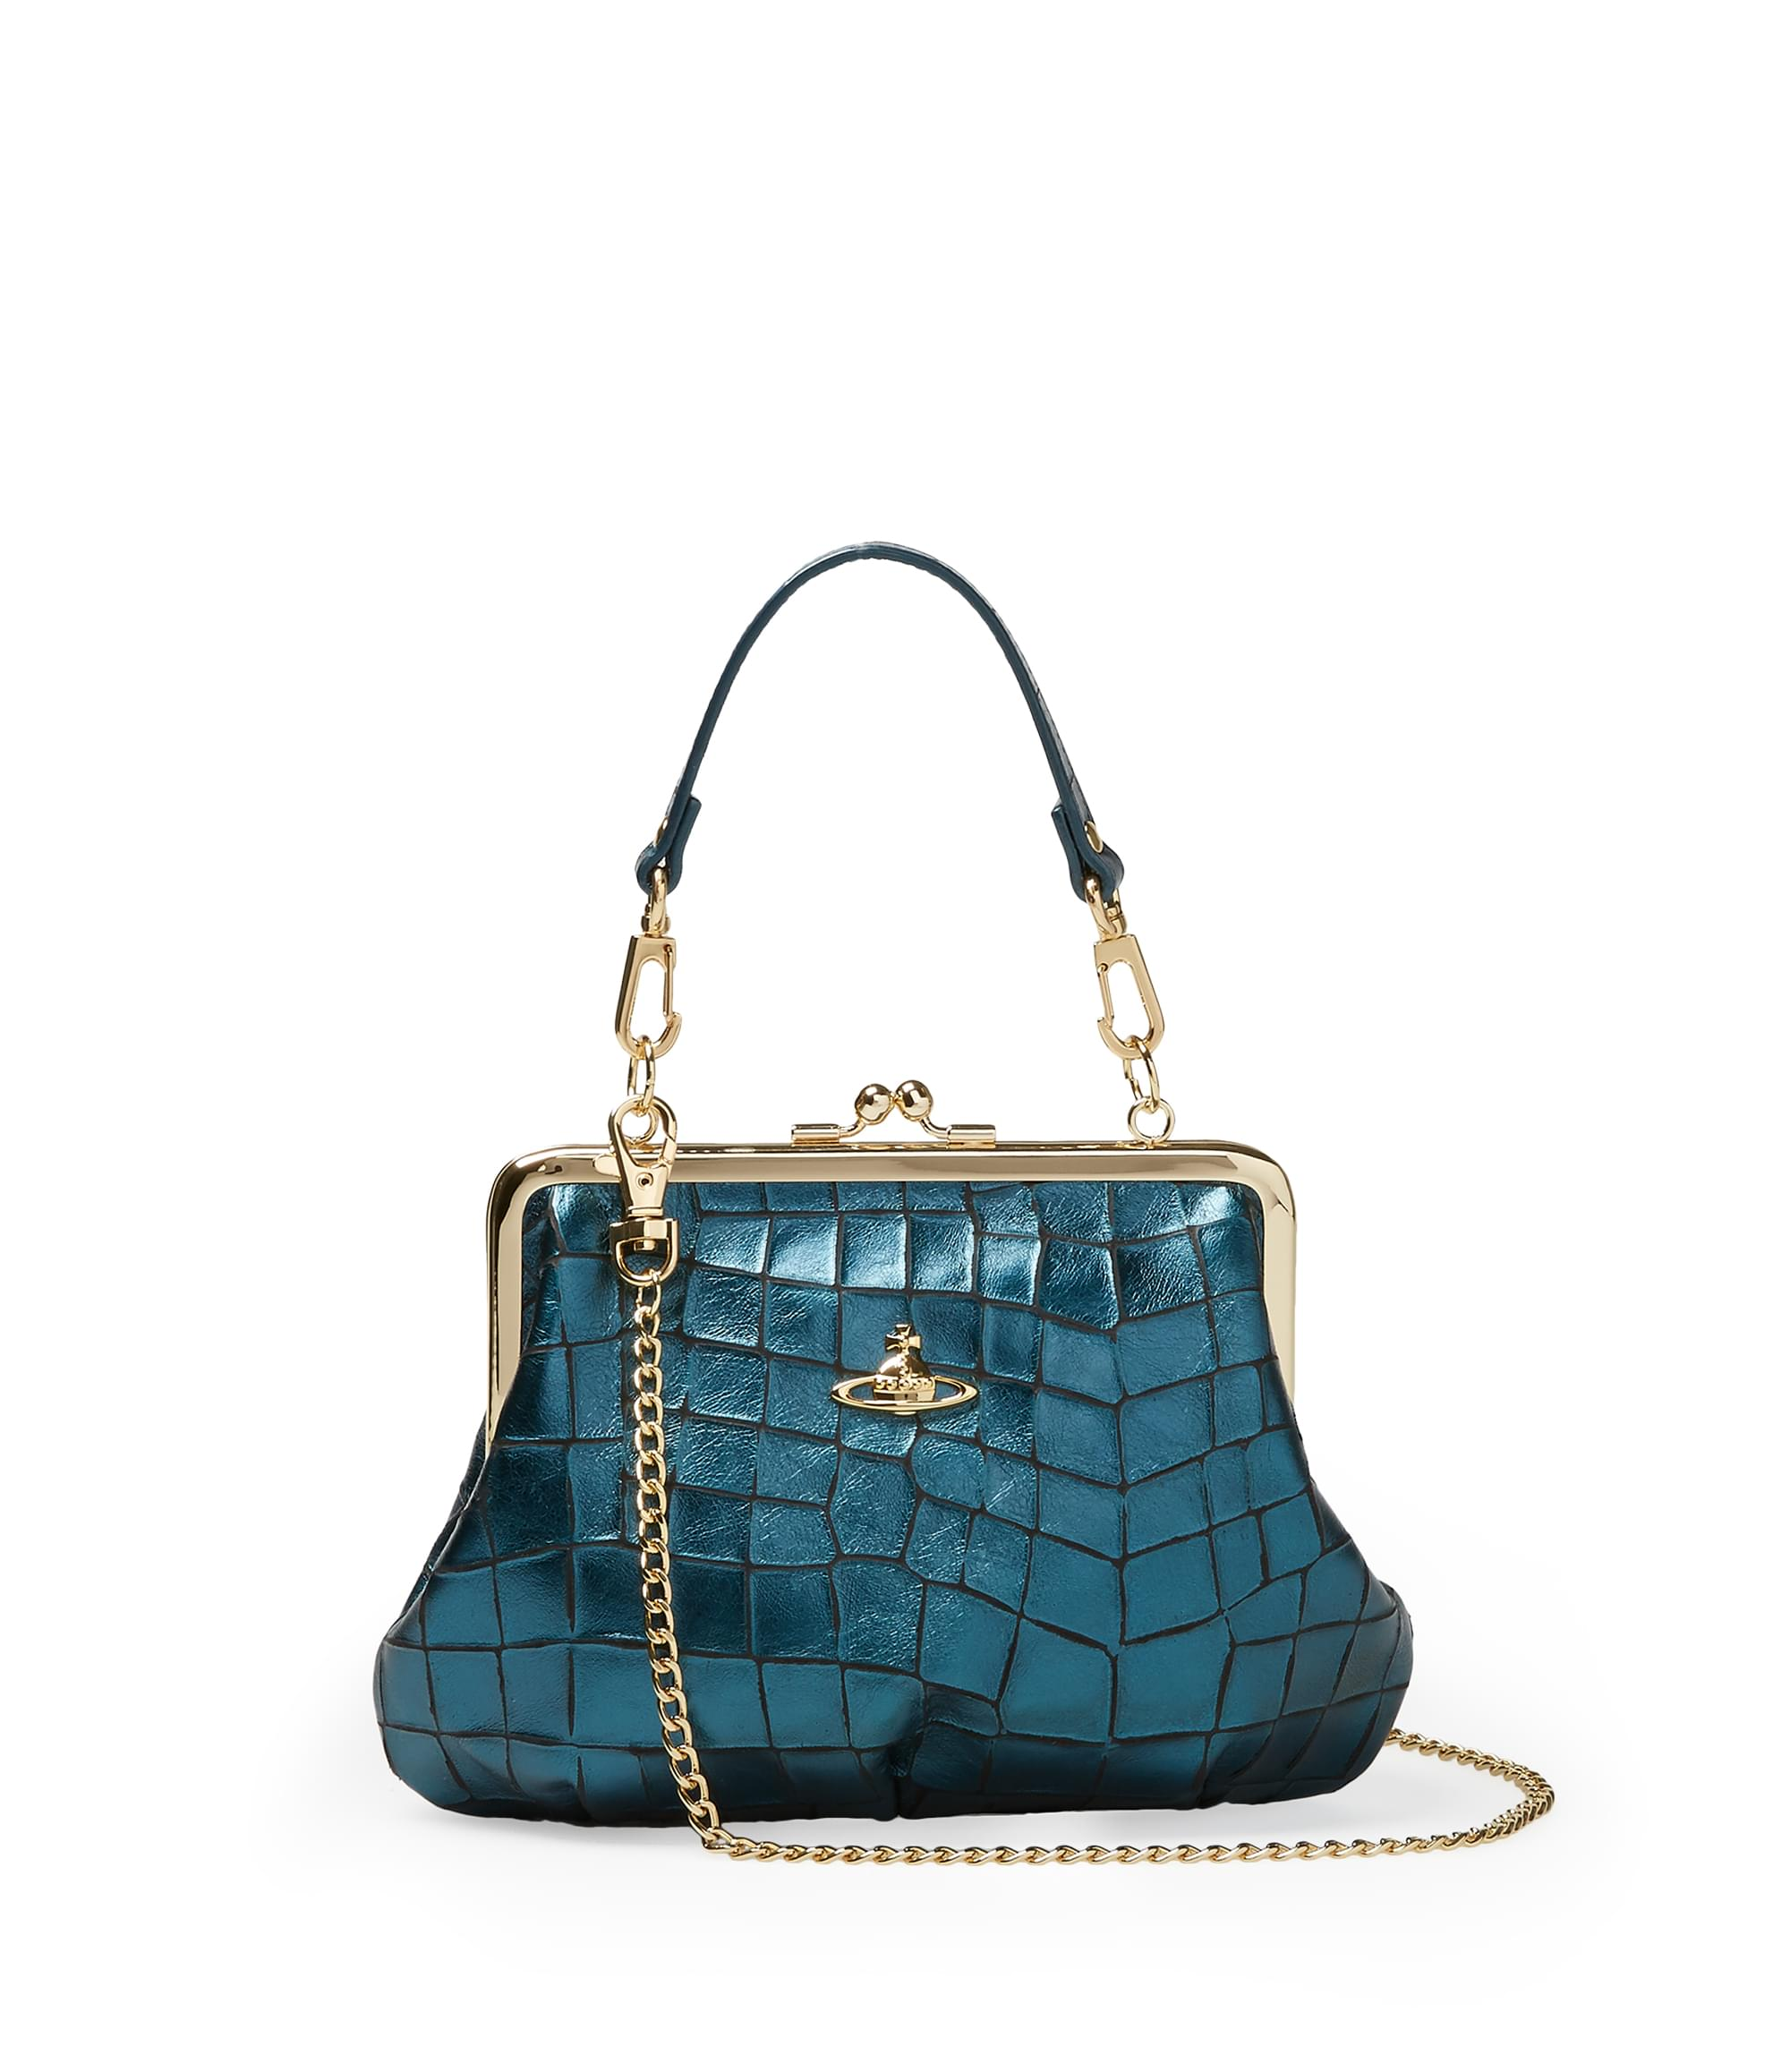 Vivienne Westwood Blue Armour Bag 3655